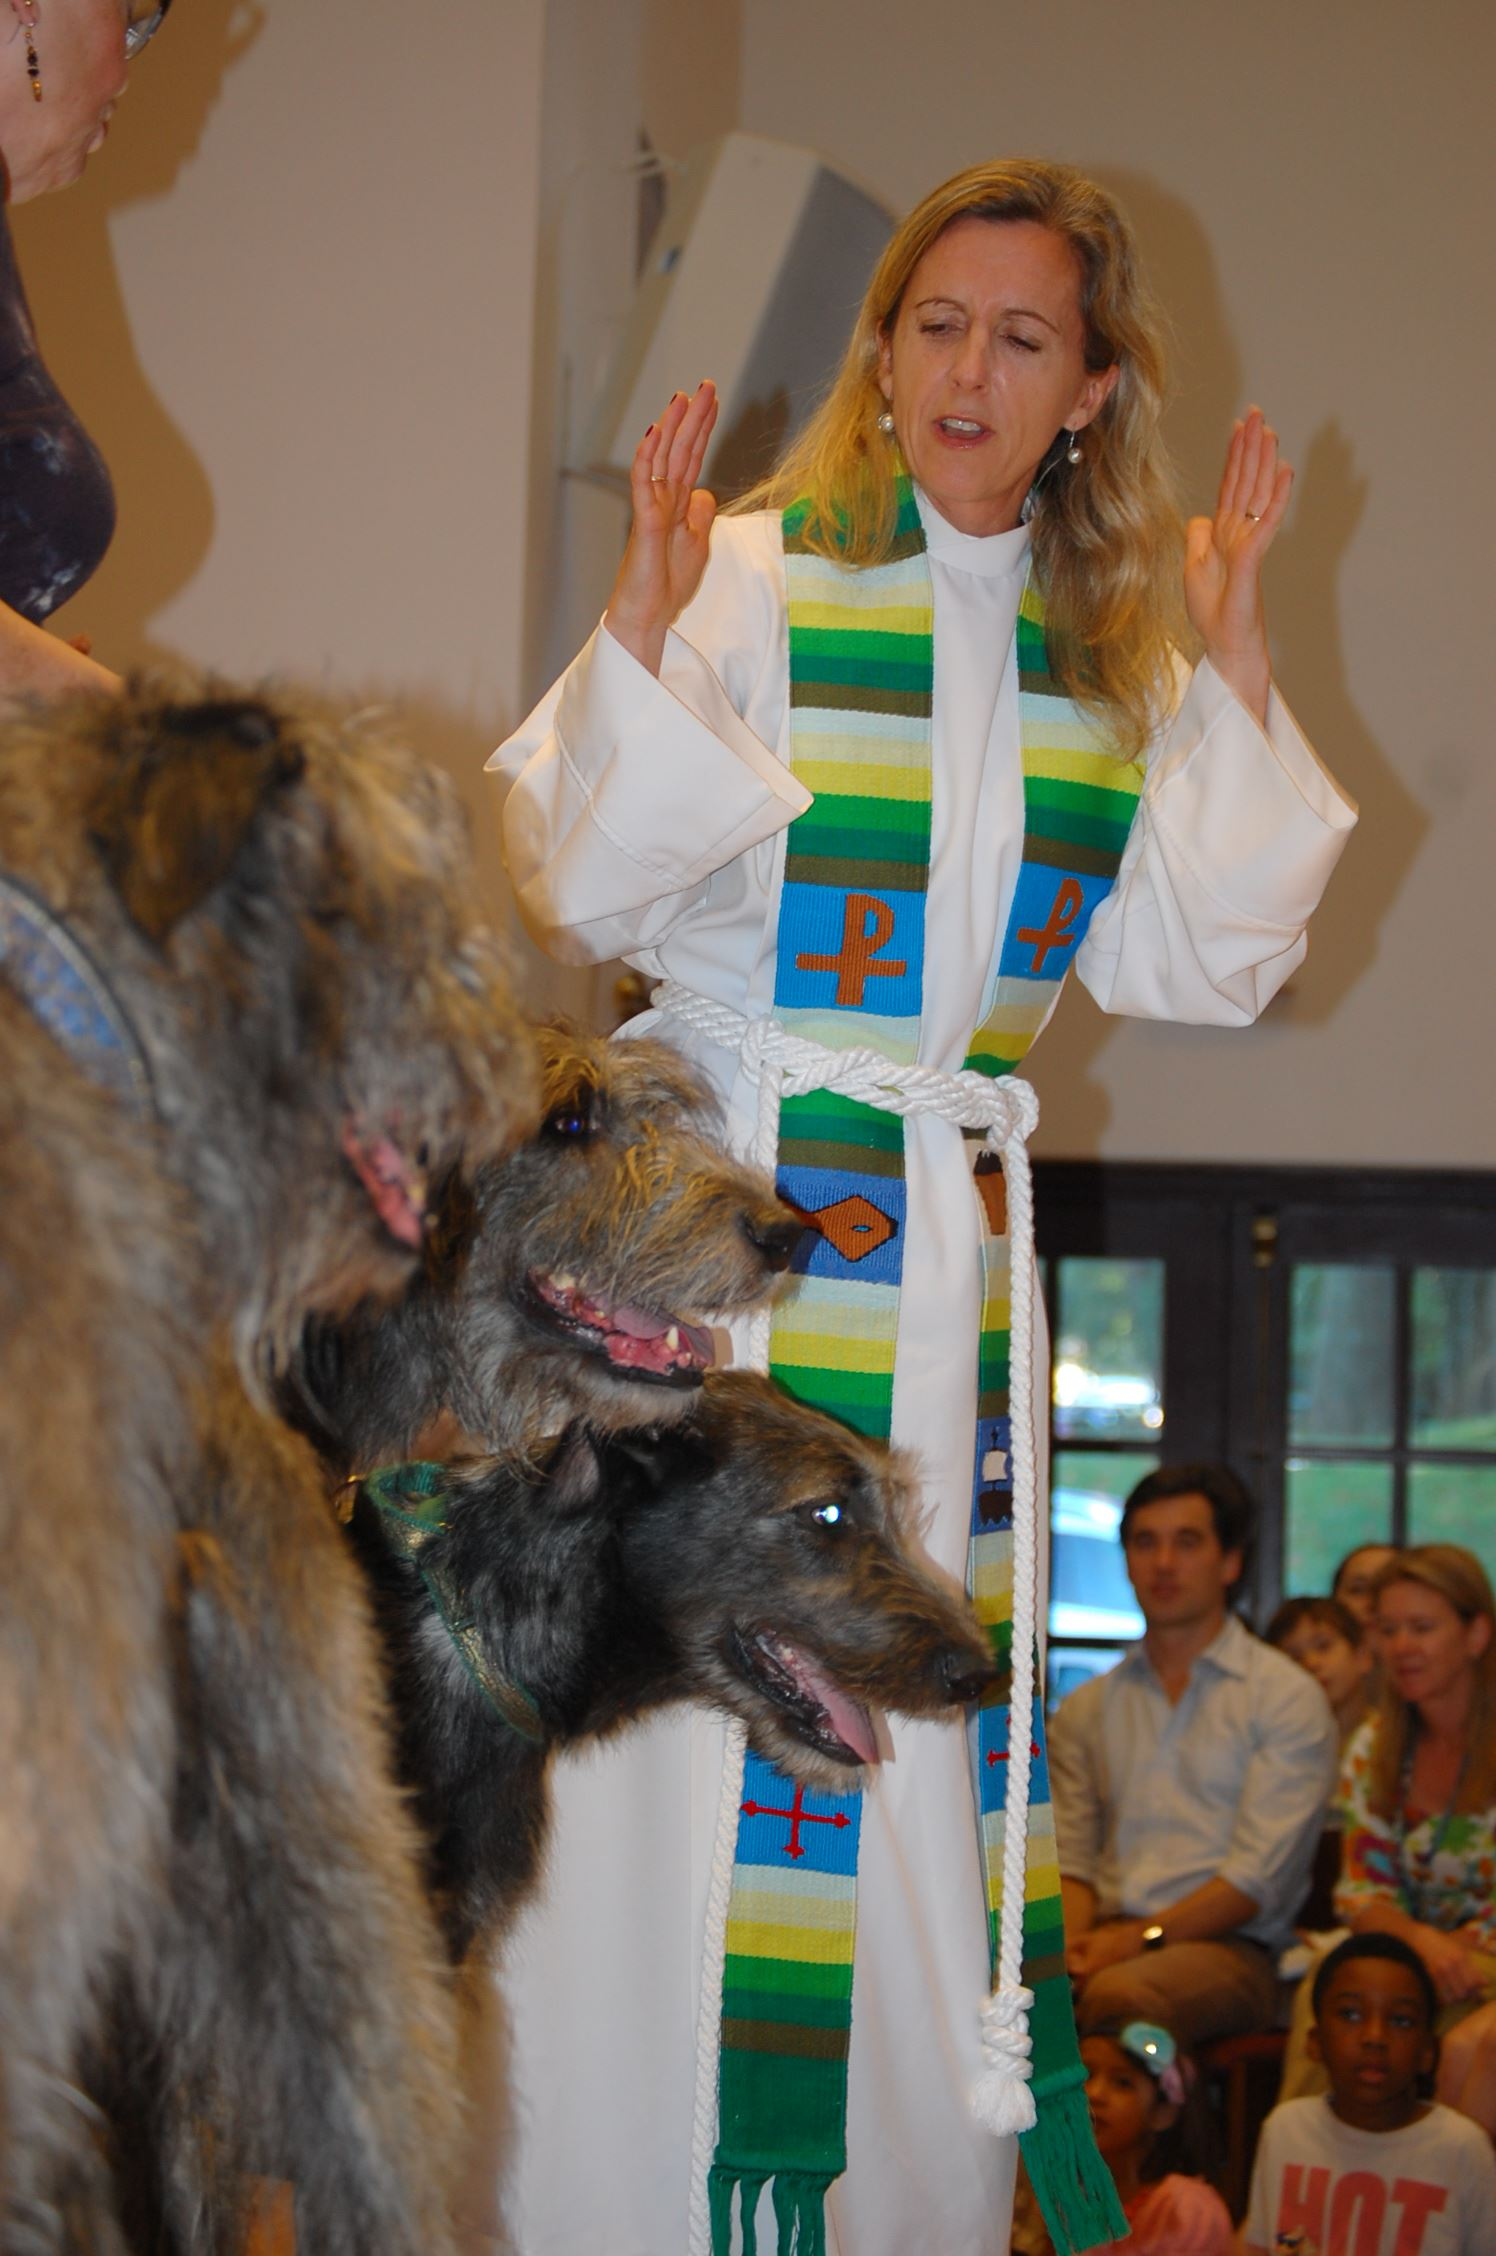 Reverend Katie Solter with dogs in church